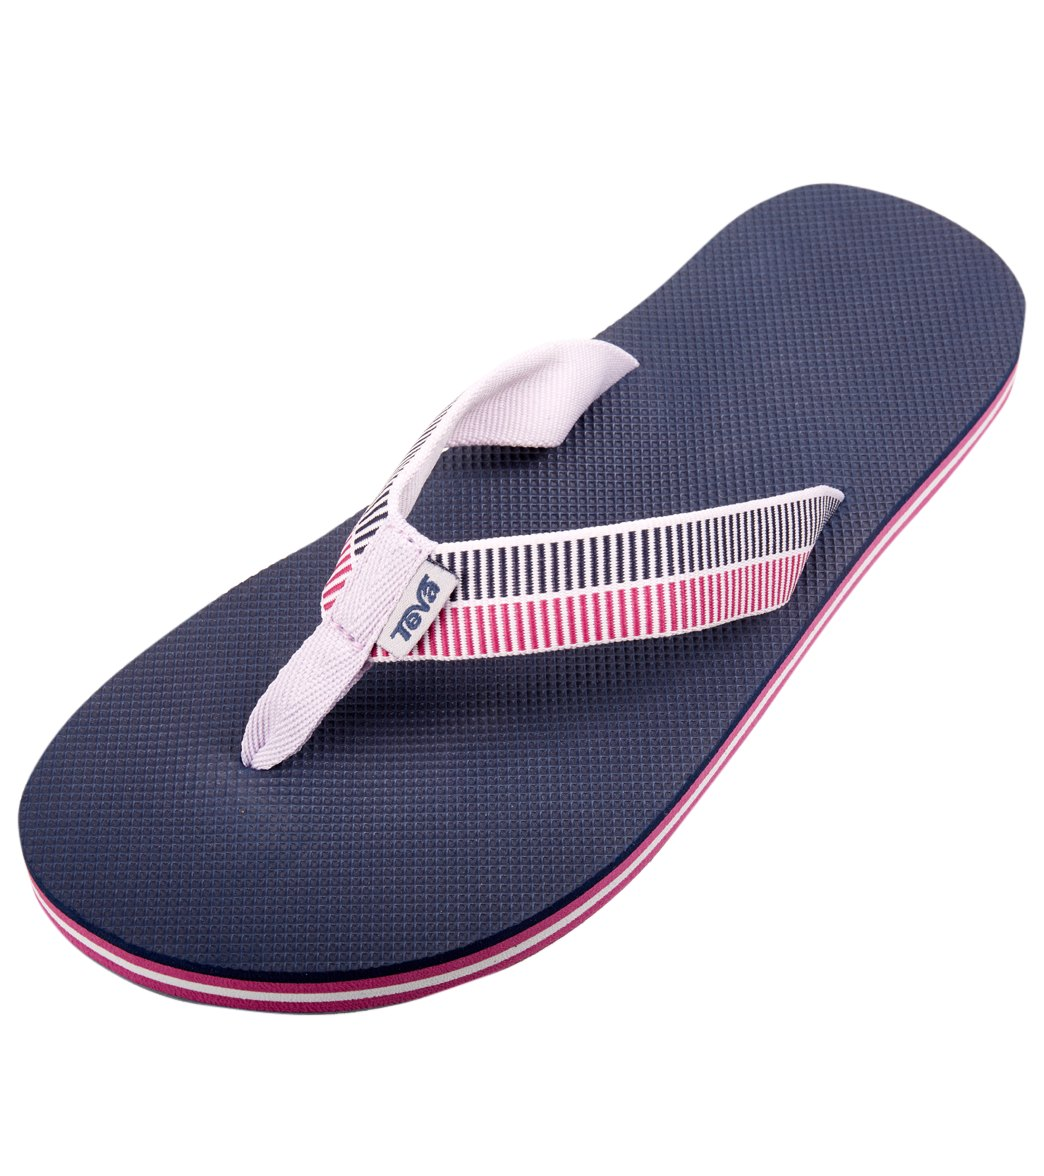 816b873fc82b Teva Women s Deckers Flip Flop at SwimOutlet.com